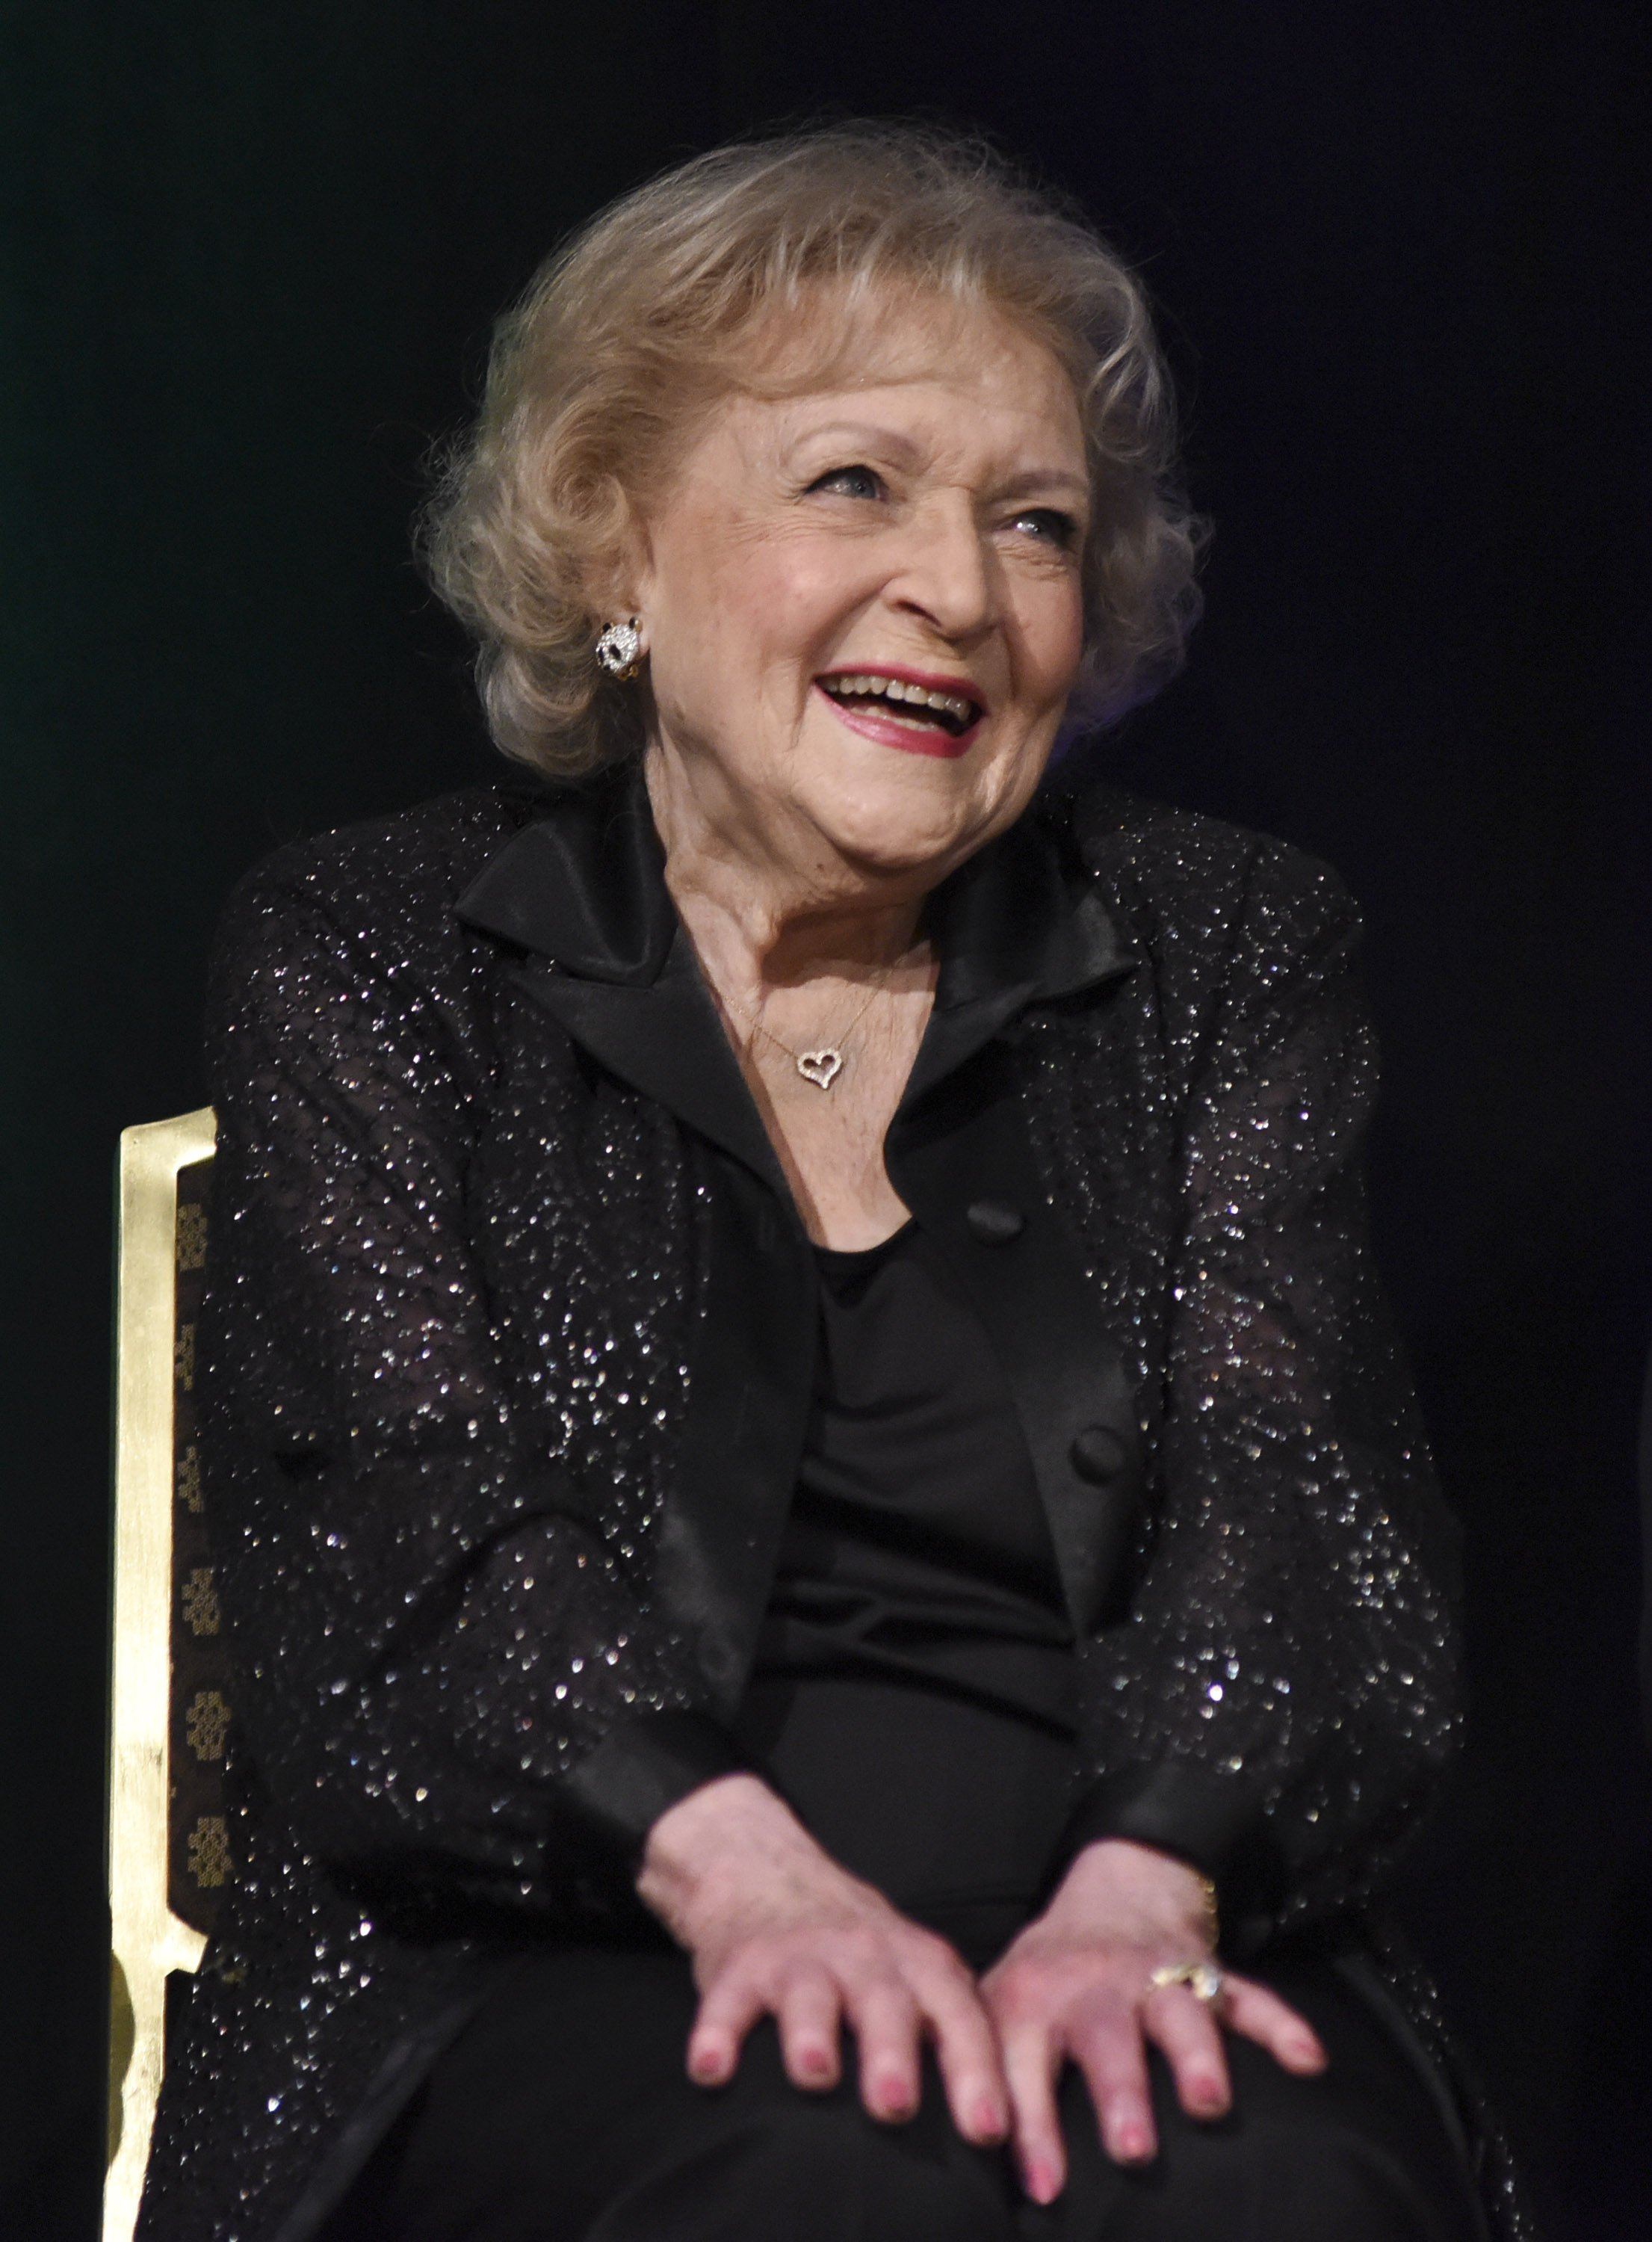 Betty White at The TMA Heller Awards on May 28, 2015 in Century City, California | Photo: Getty Images